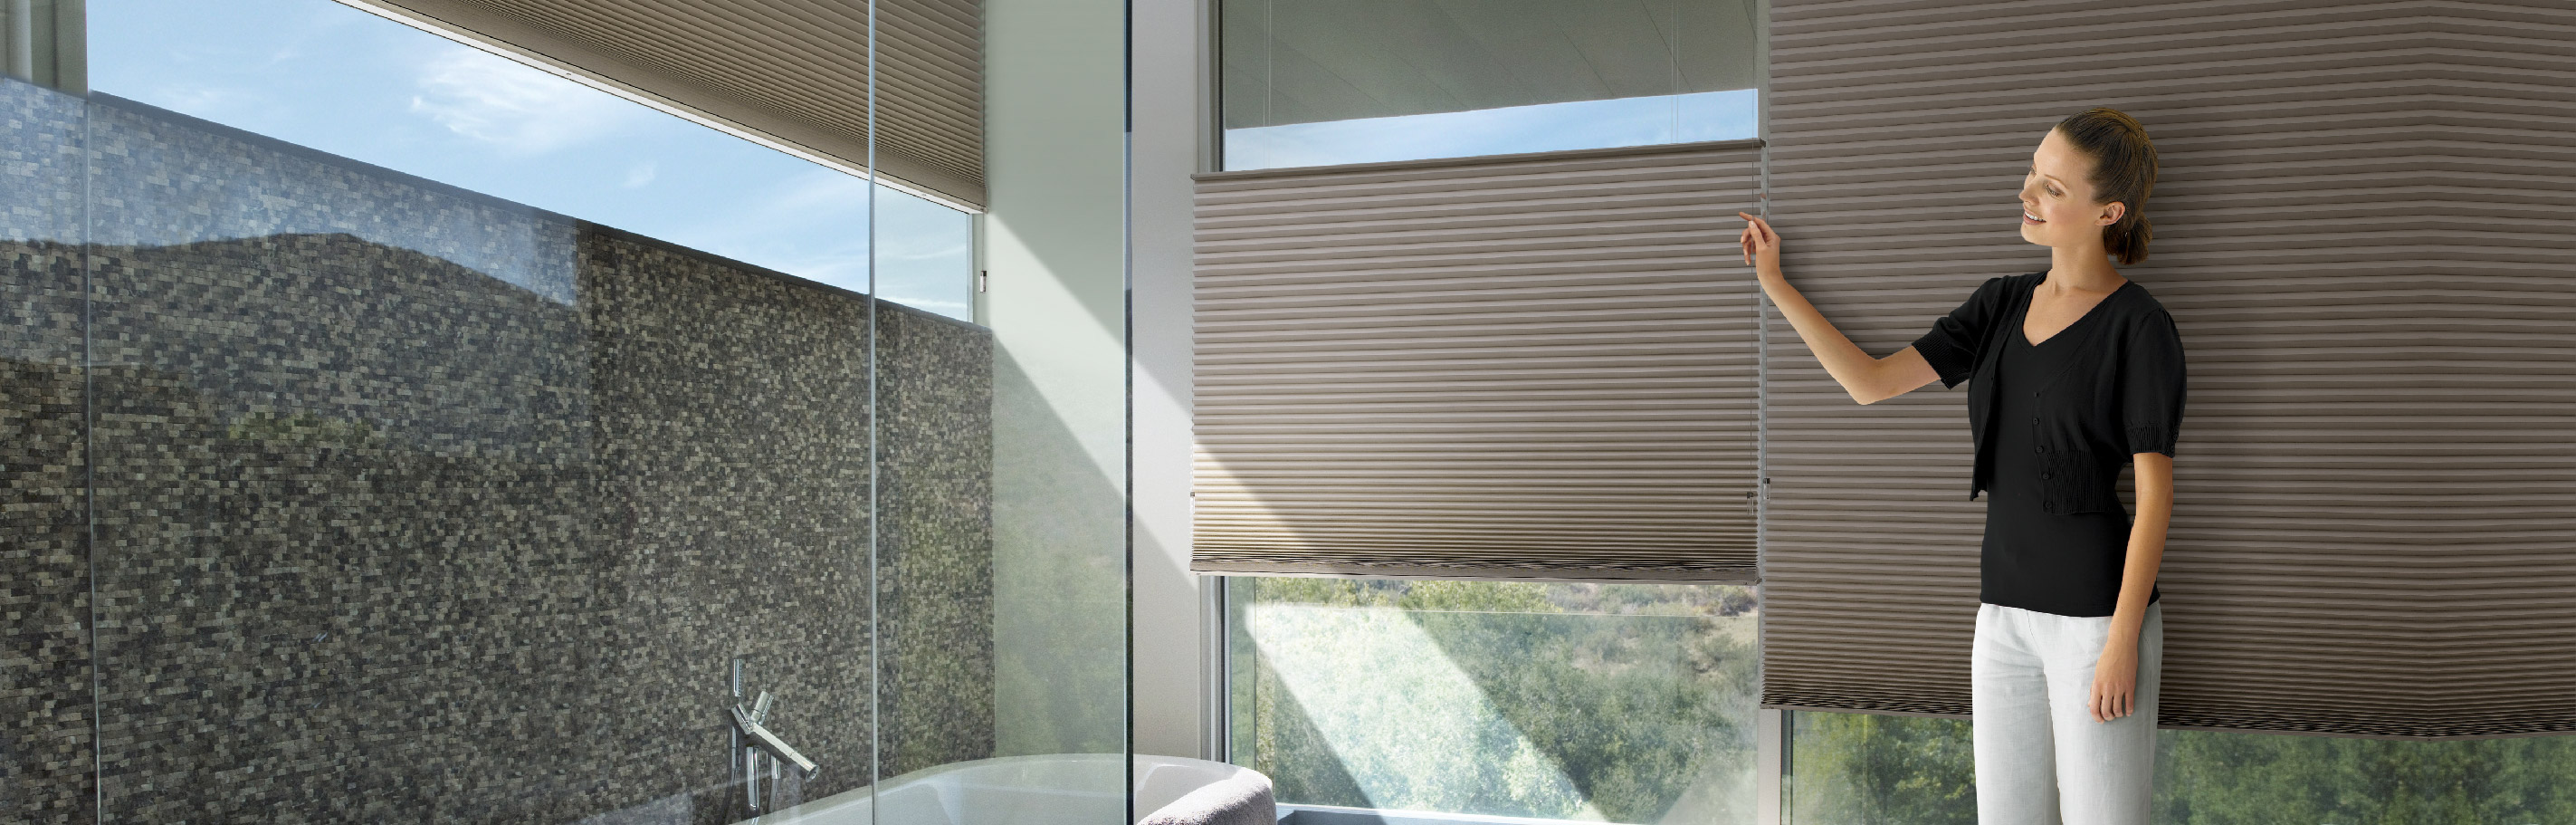 Luxaflex Showcase - Products - Softshades and Fabrics - Duette Shades Bottom